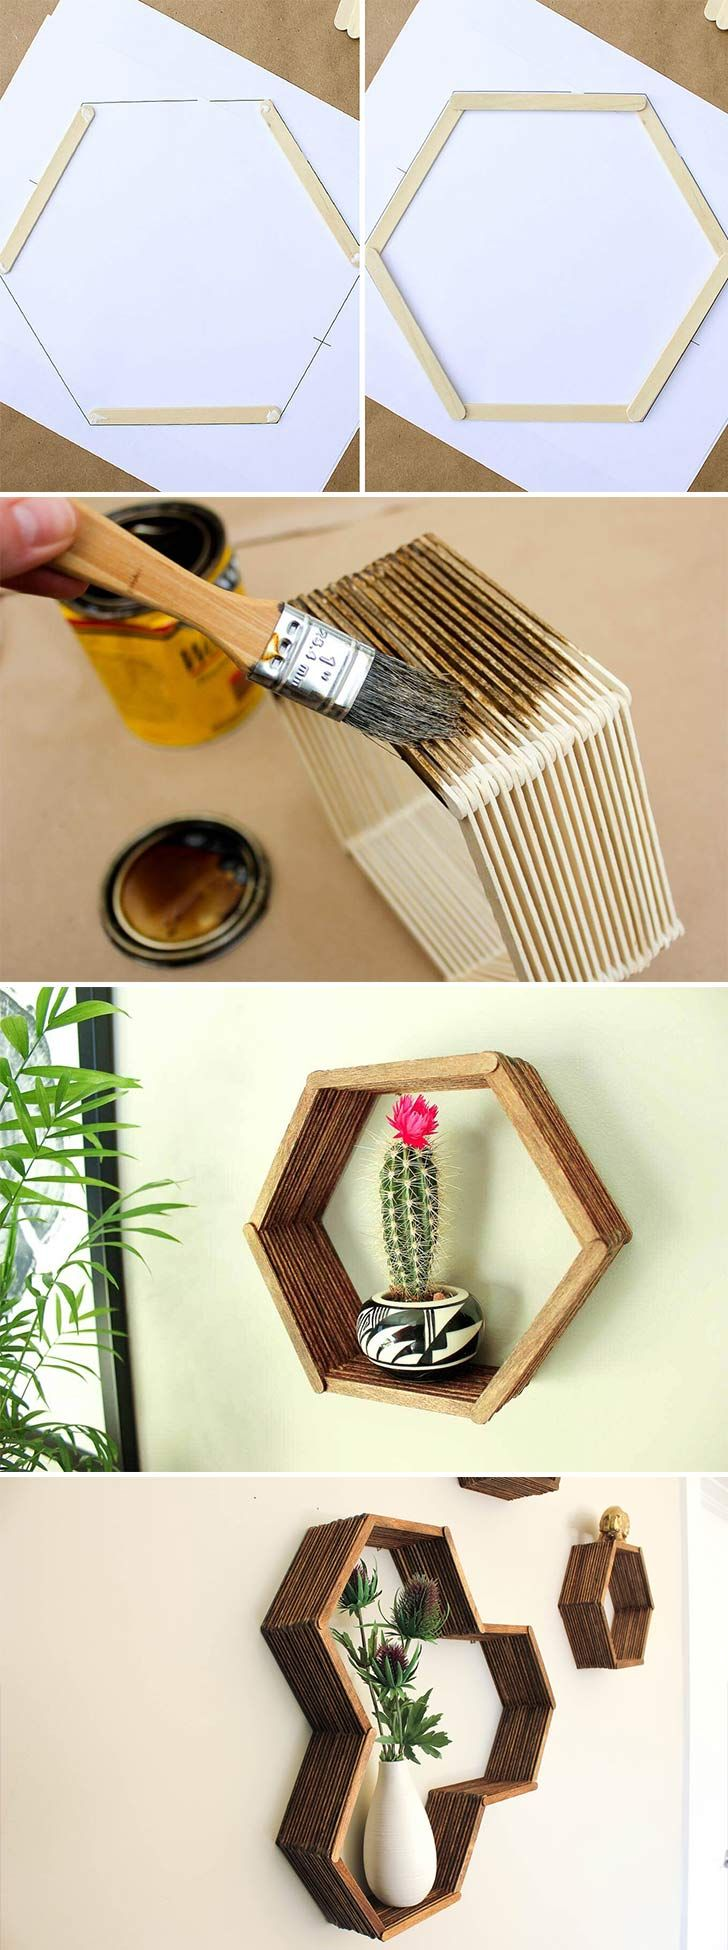 40 Amazing DIY Home Decor Ideas That Won t Look DIYed. Best 25  Wall decorations ideas on Pinterest